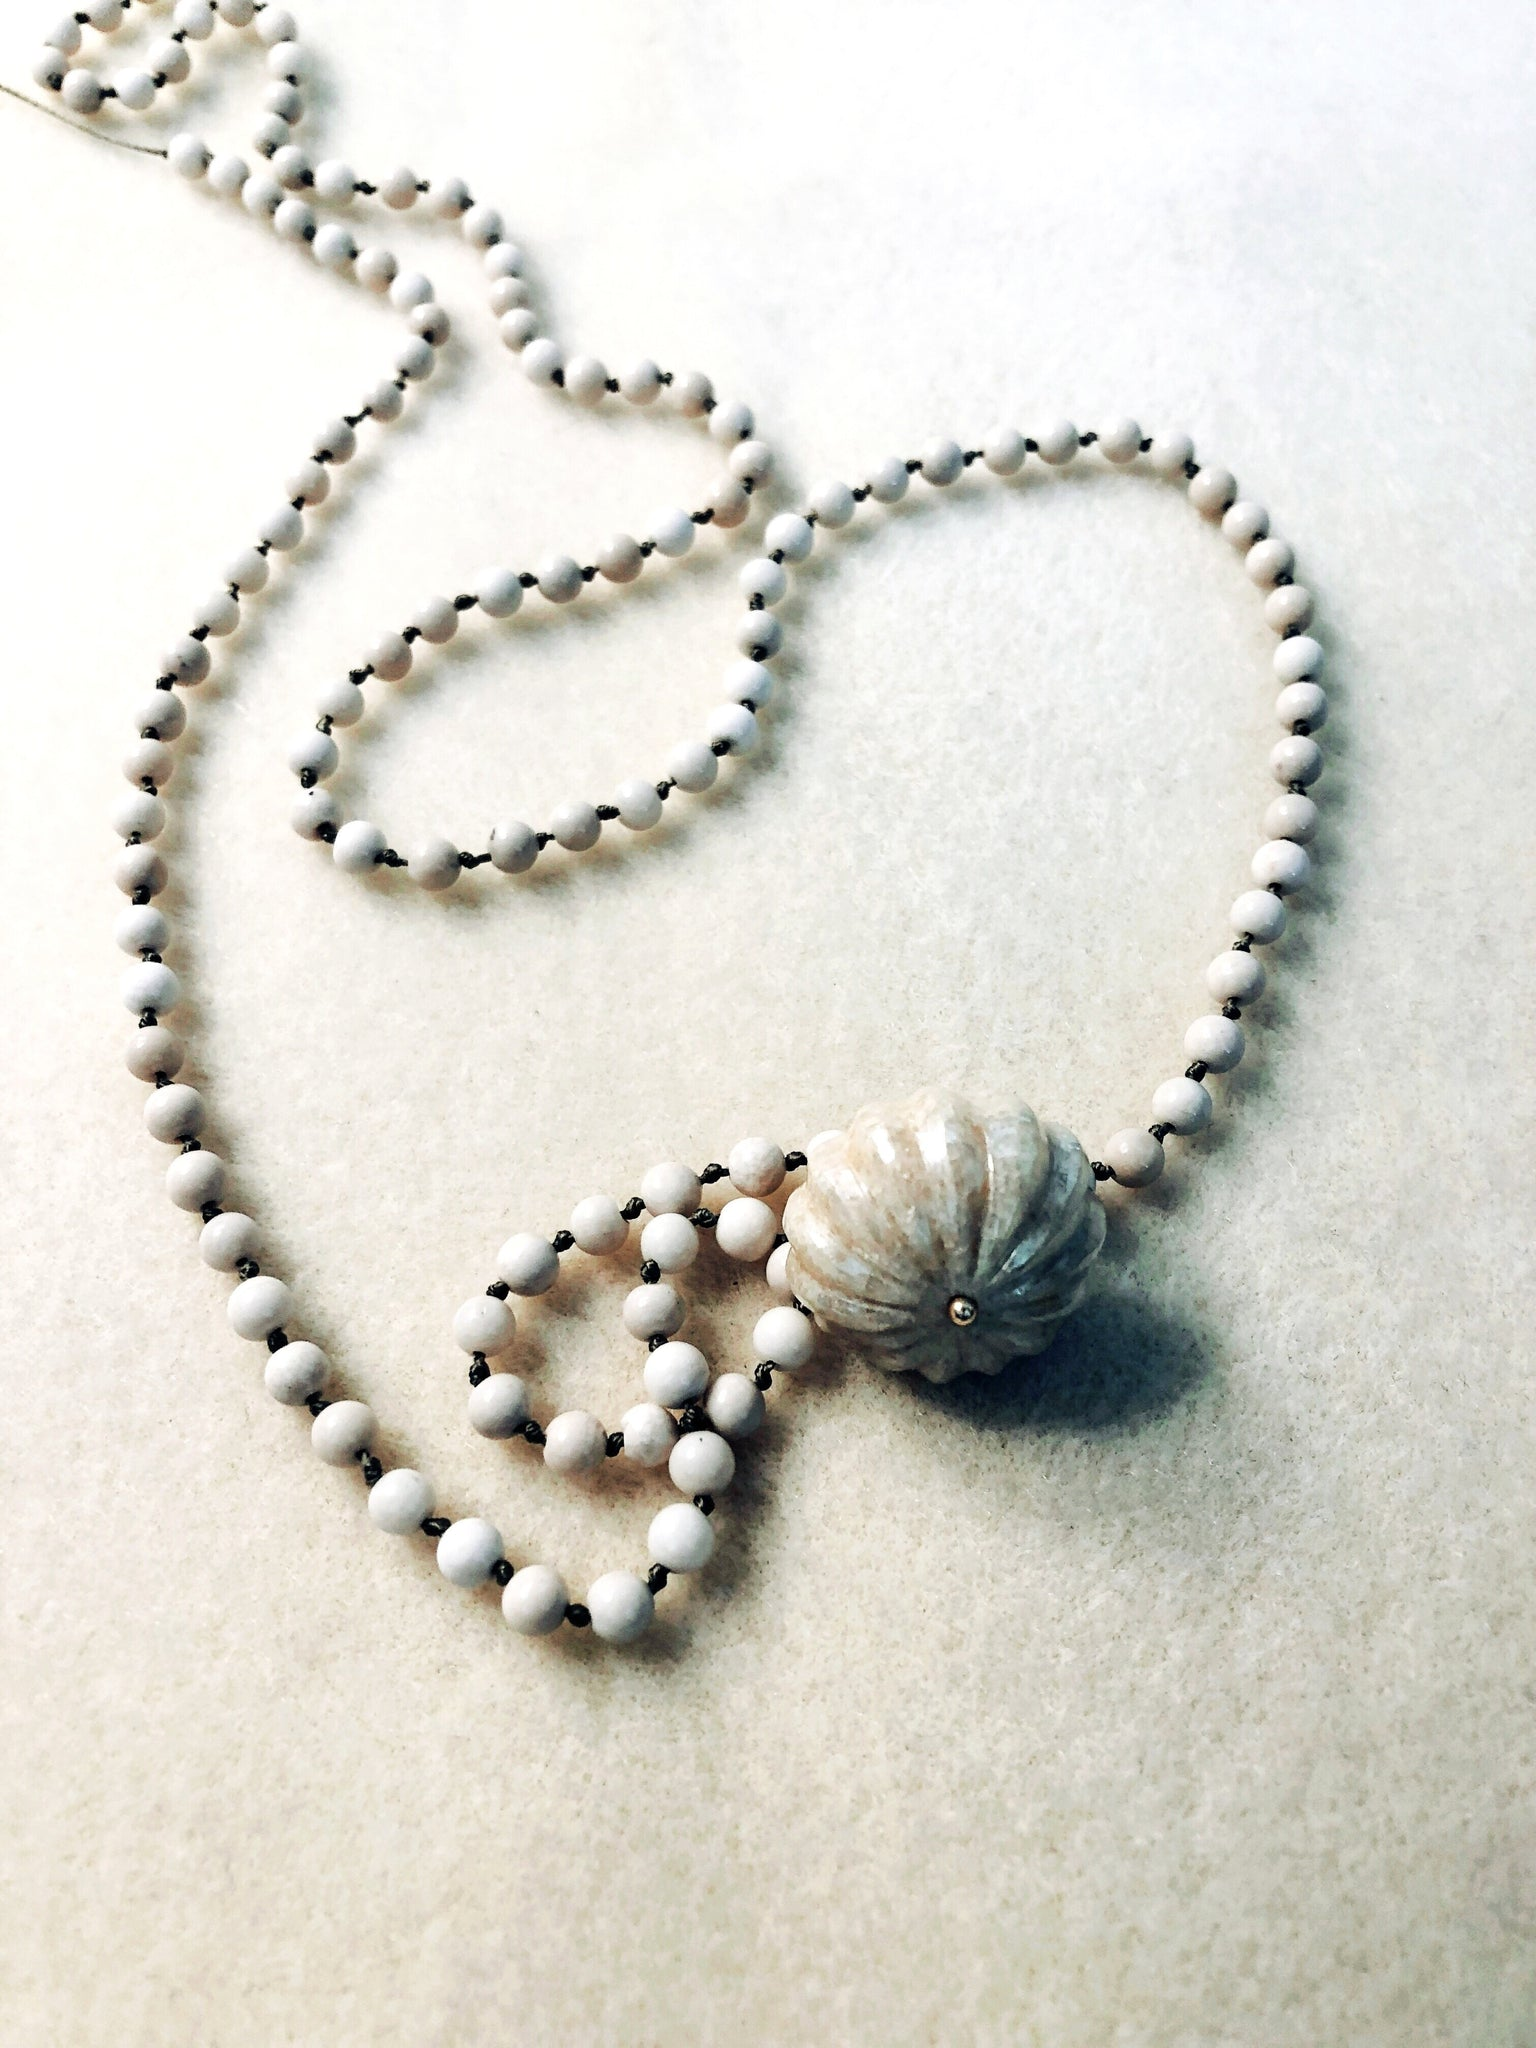 Fossil stone and quartz necklace